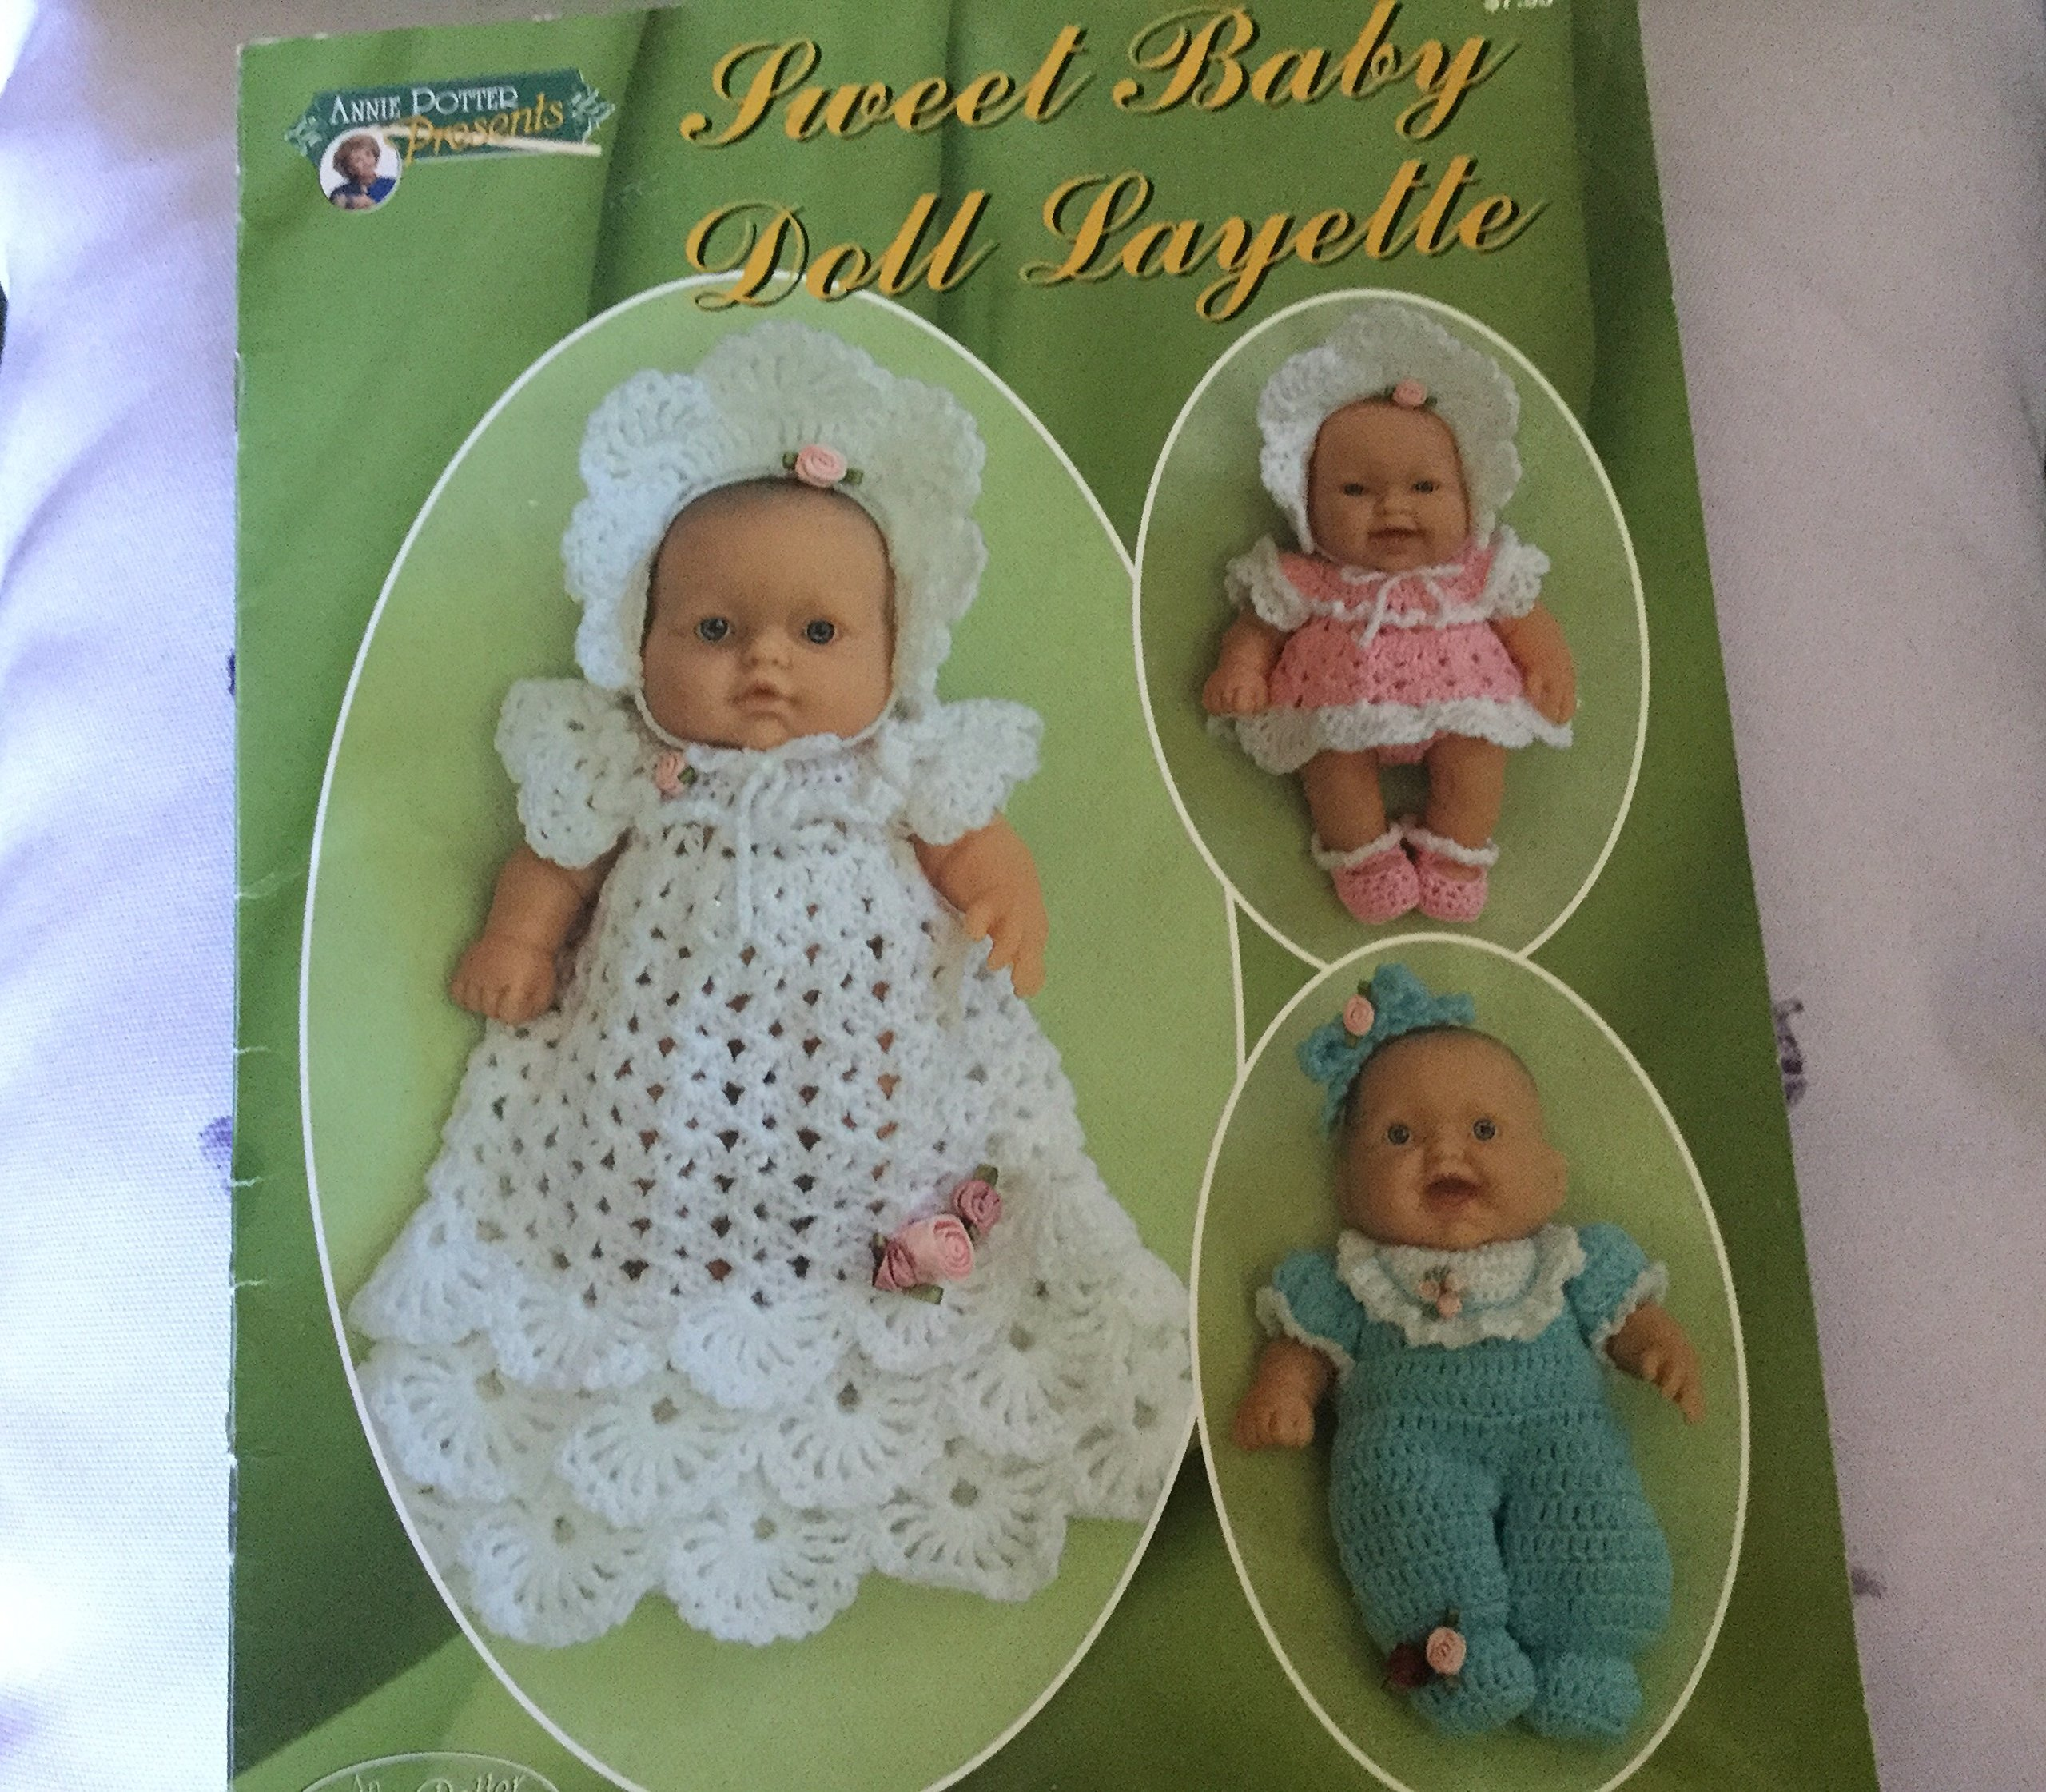 Sweet Baby Doll Layette Annie Potter Amazon Books